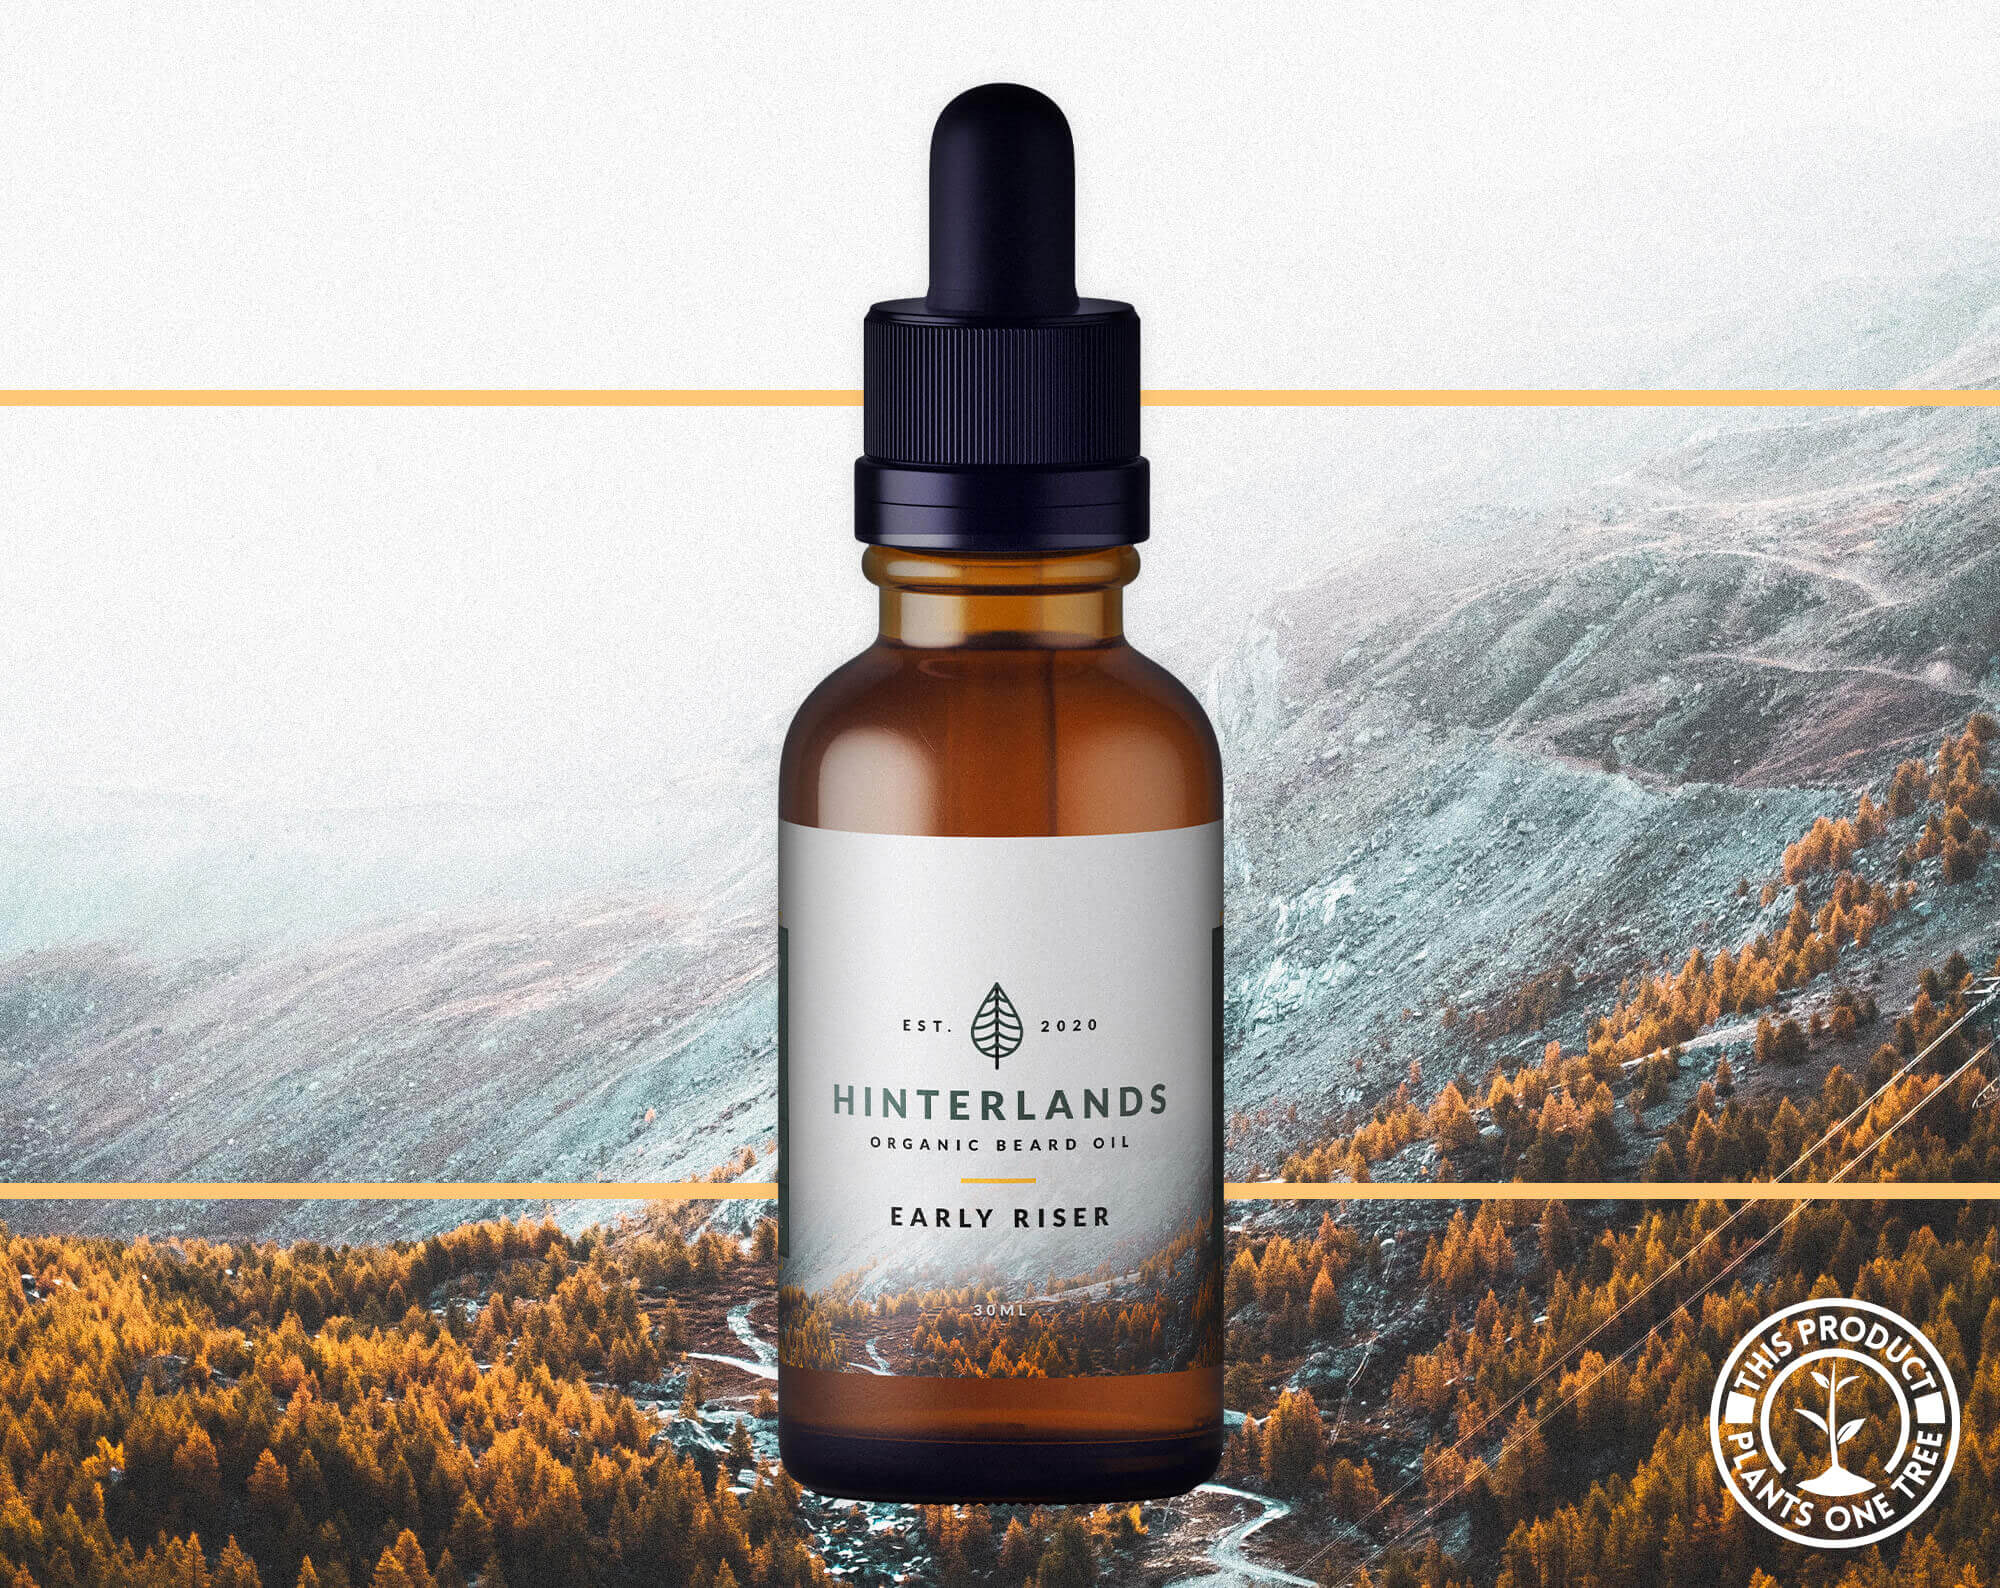 Early Riser Hinterlands Beard Oil